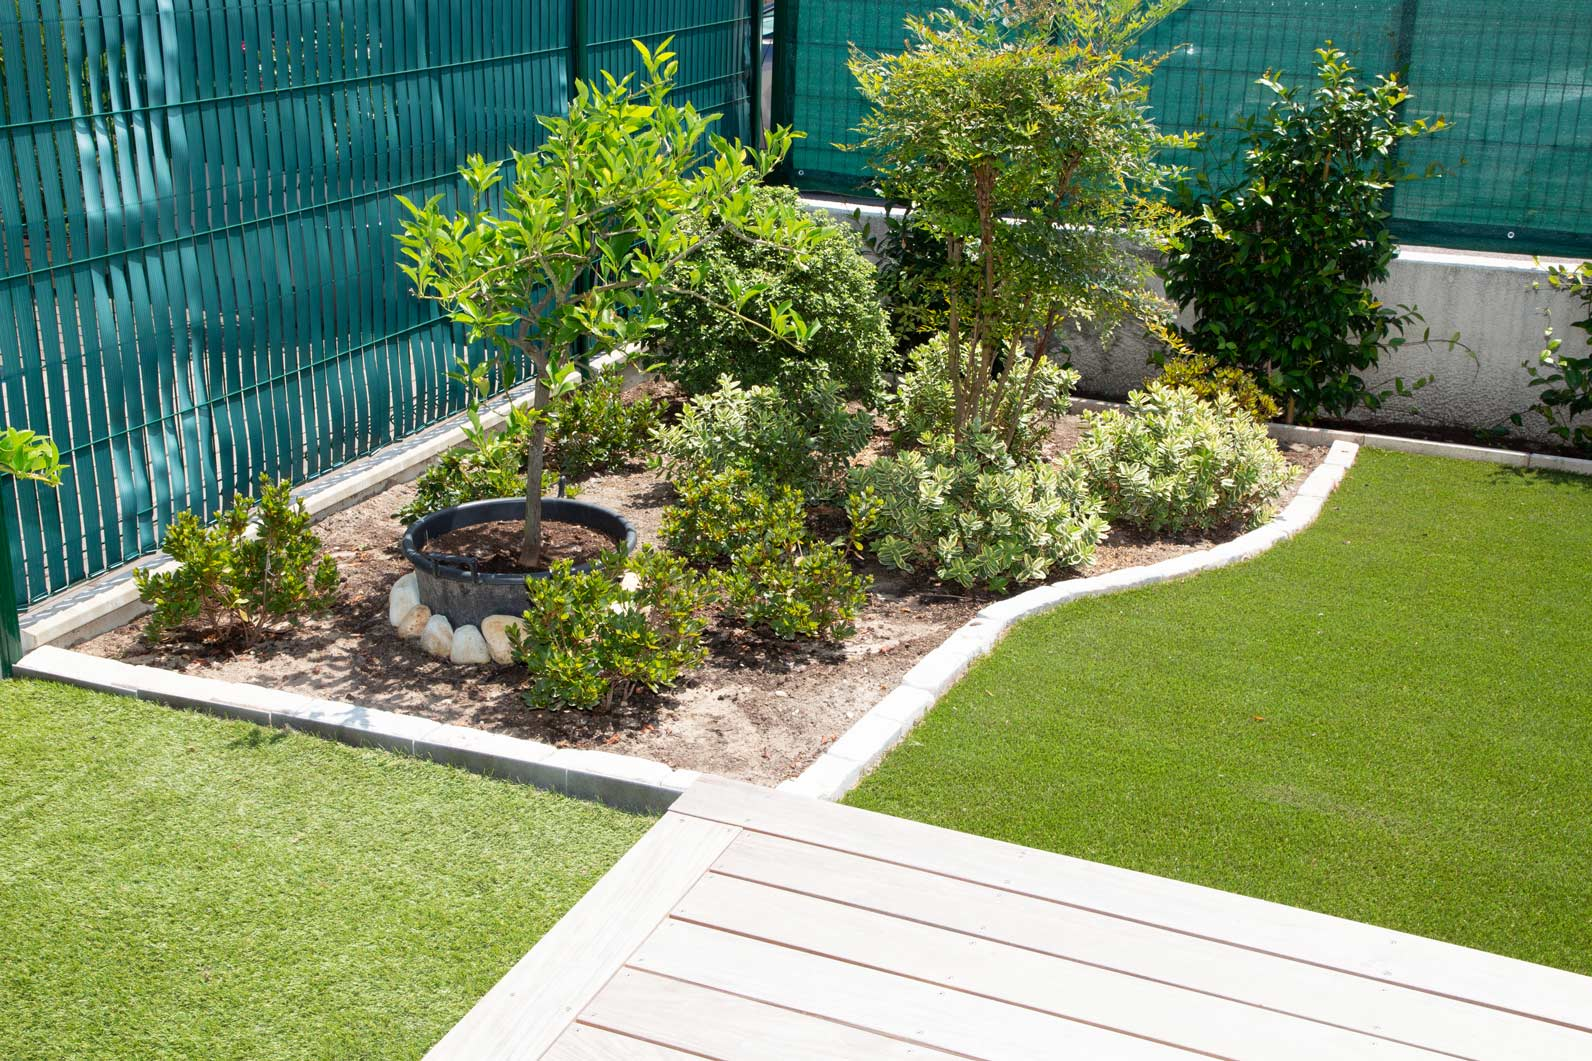 trees plants mulch synthetic turf